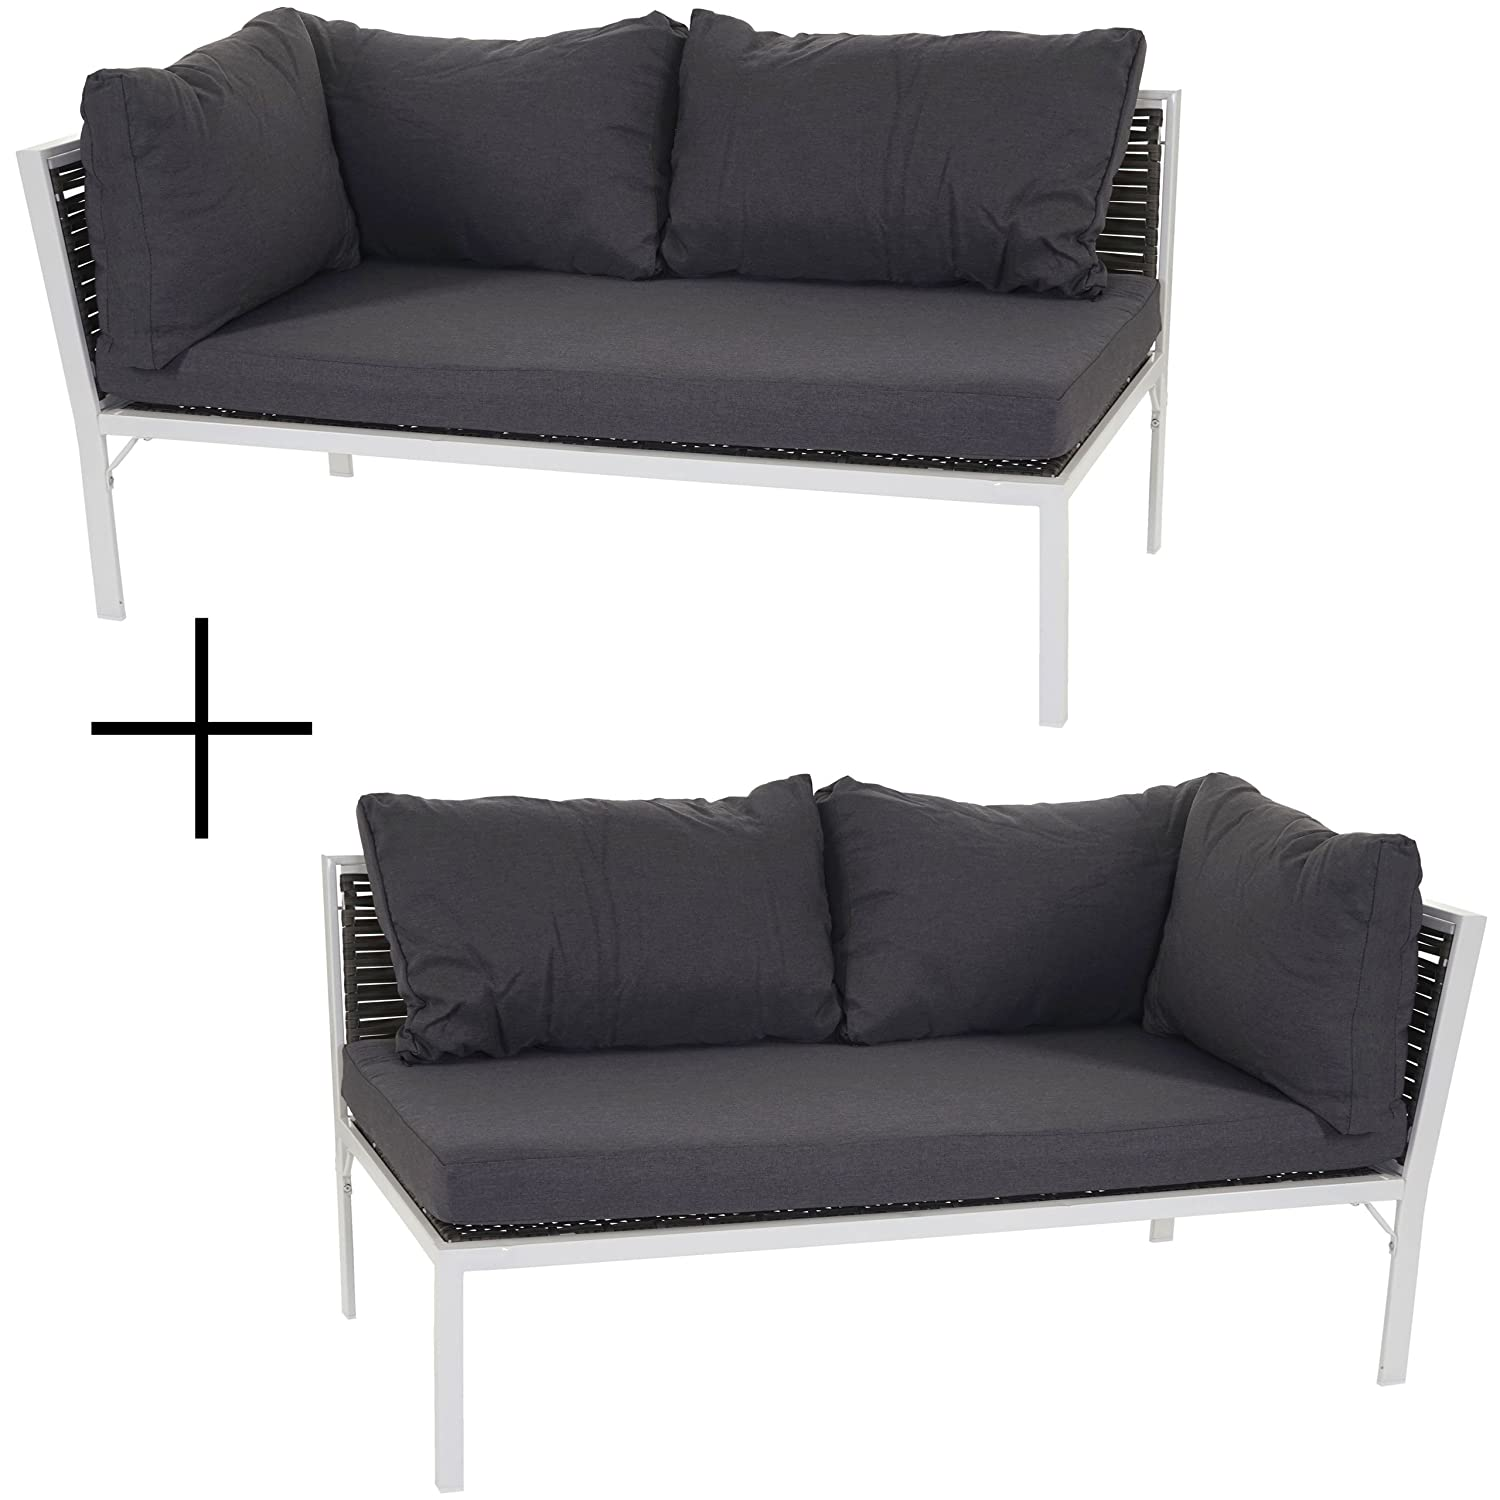 poly rattan sofa delphi loungesofa couch alu kissen anthrazit g nstig. Black Bedroom Furniture Sets. Home Design Ideas